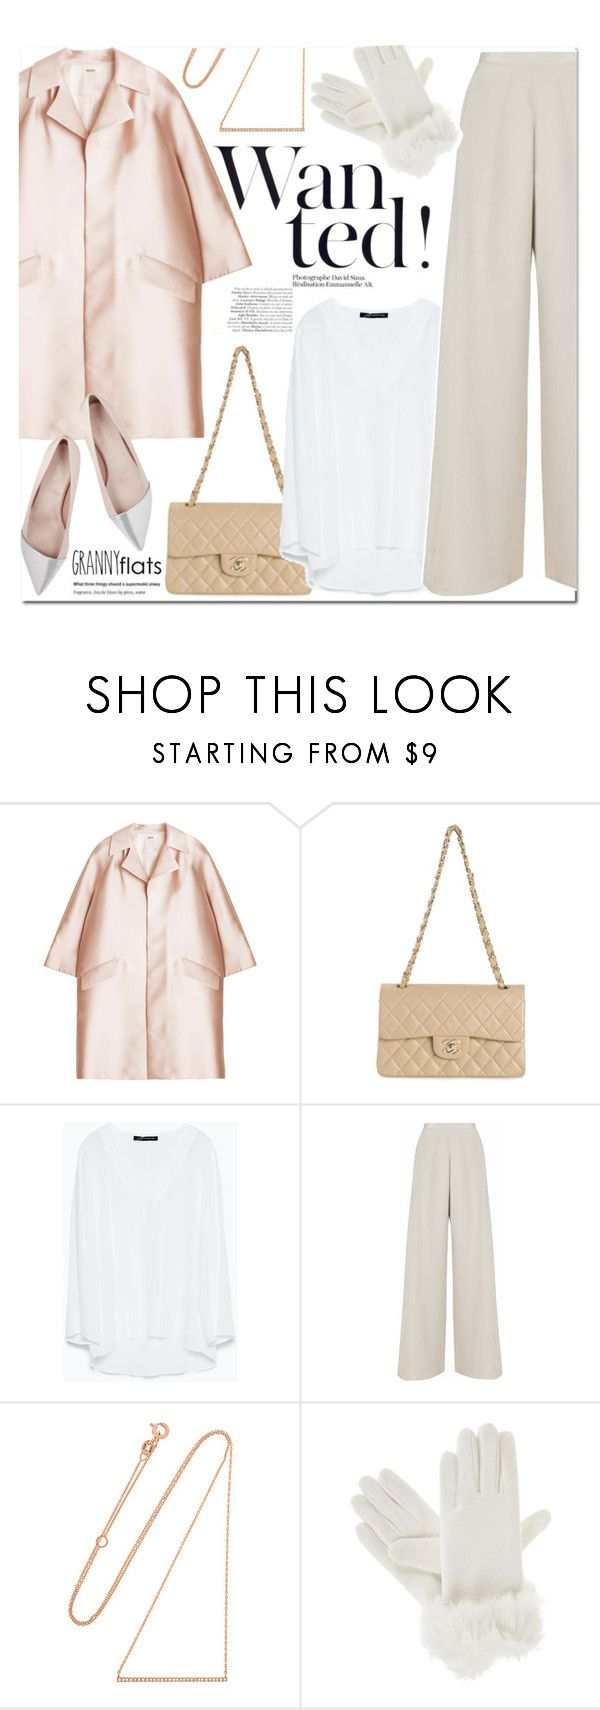 """""""Cute Trend: Granny Flats"""" by stellaasteria ❤ liked on Polyvore featuring ADAM, Chanel, Zara, Nicole Coste, Diane Kordas, Isotoner and Giambattista Valli"""